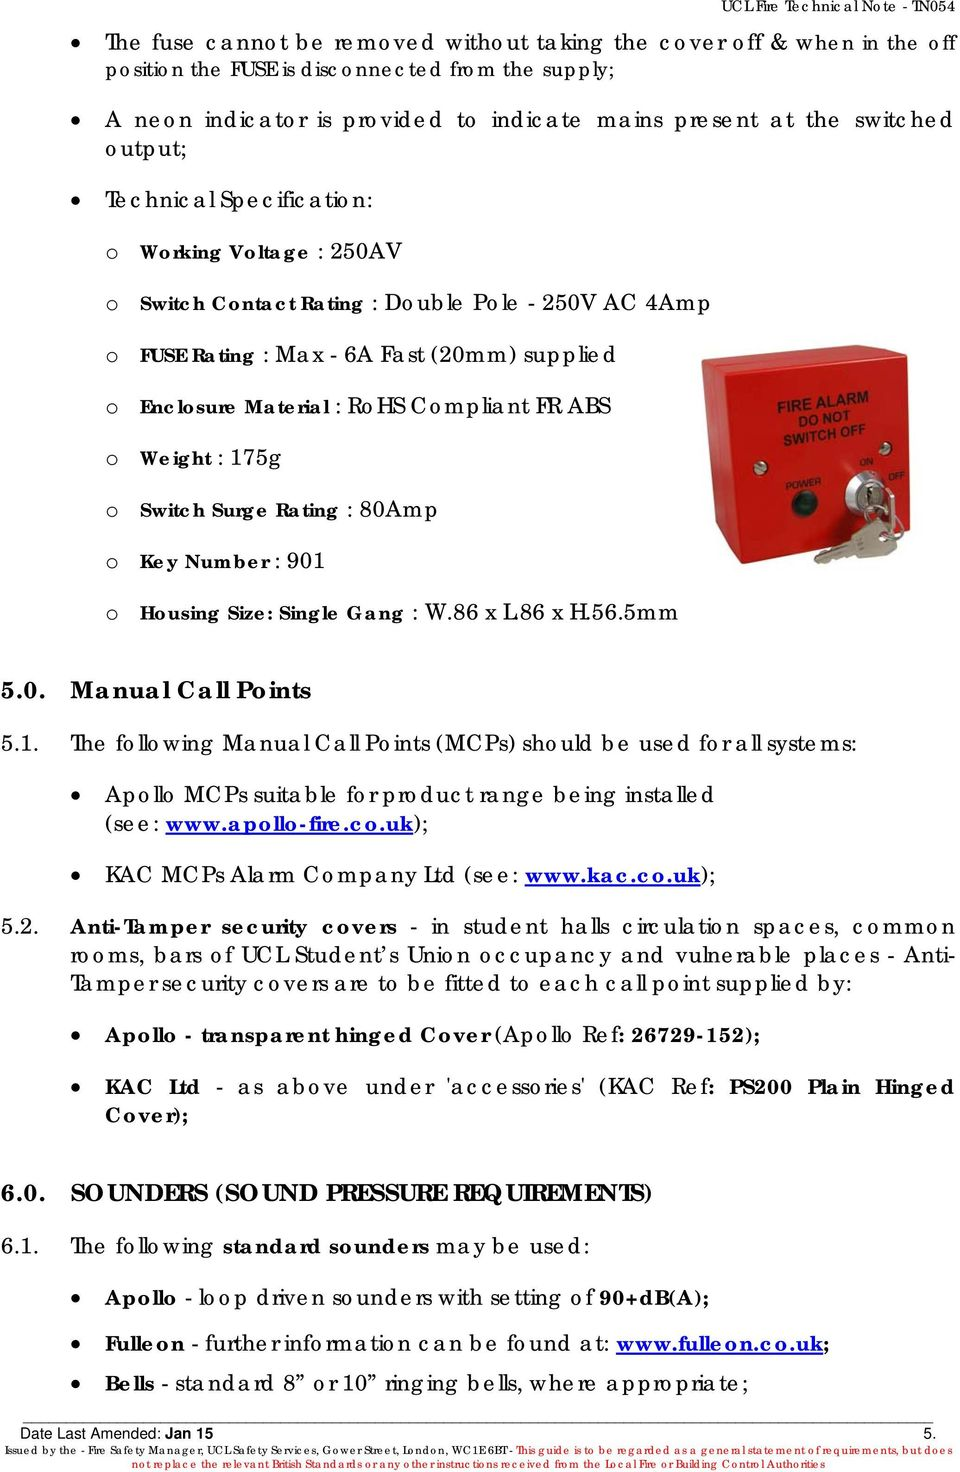 Material : RoHS Compliant FR ABS o Weight : 175g o Switch Surge Rating : 80Amp o Key Number : 901 o Housing Size: Single Gang : W.86 x L.86 x H.56.5mm 5.0. Manual Call Points 5.1. The following Manual Call Points (MCPs) should be used for all systems: Apollo MCPs suitable for product range being installed (see: www.